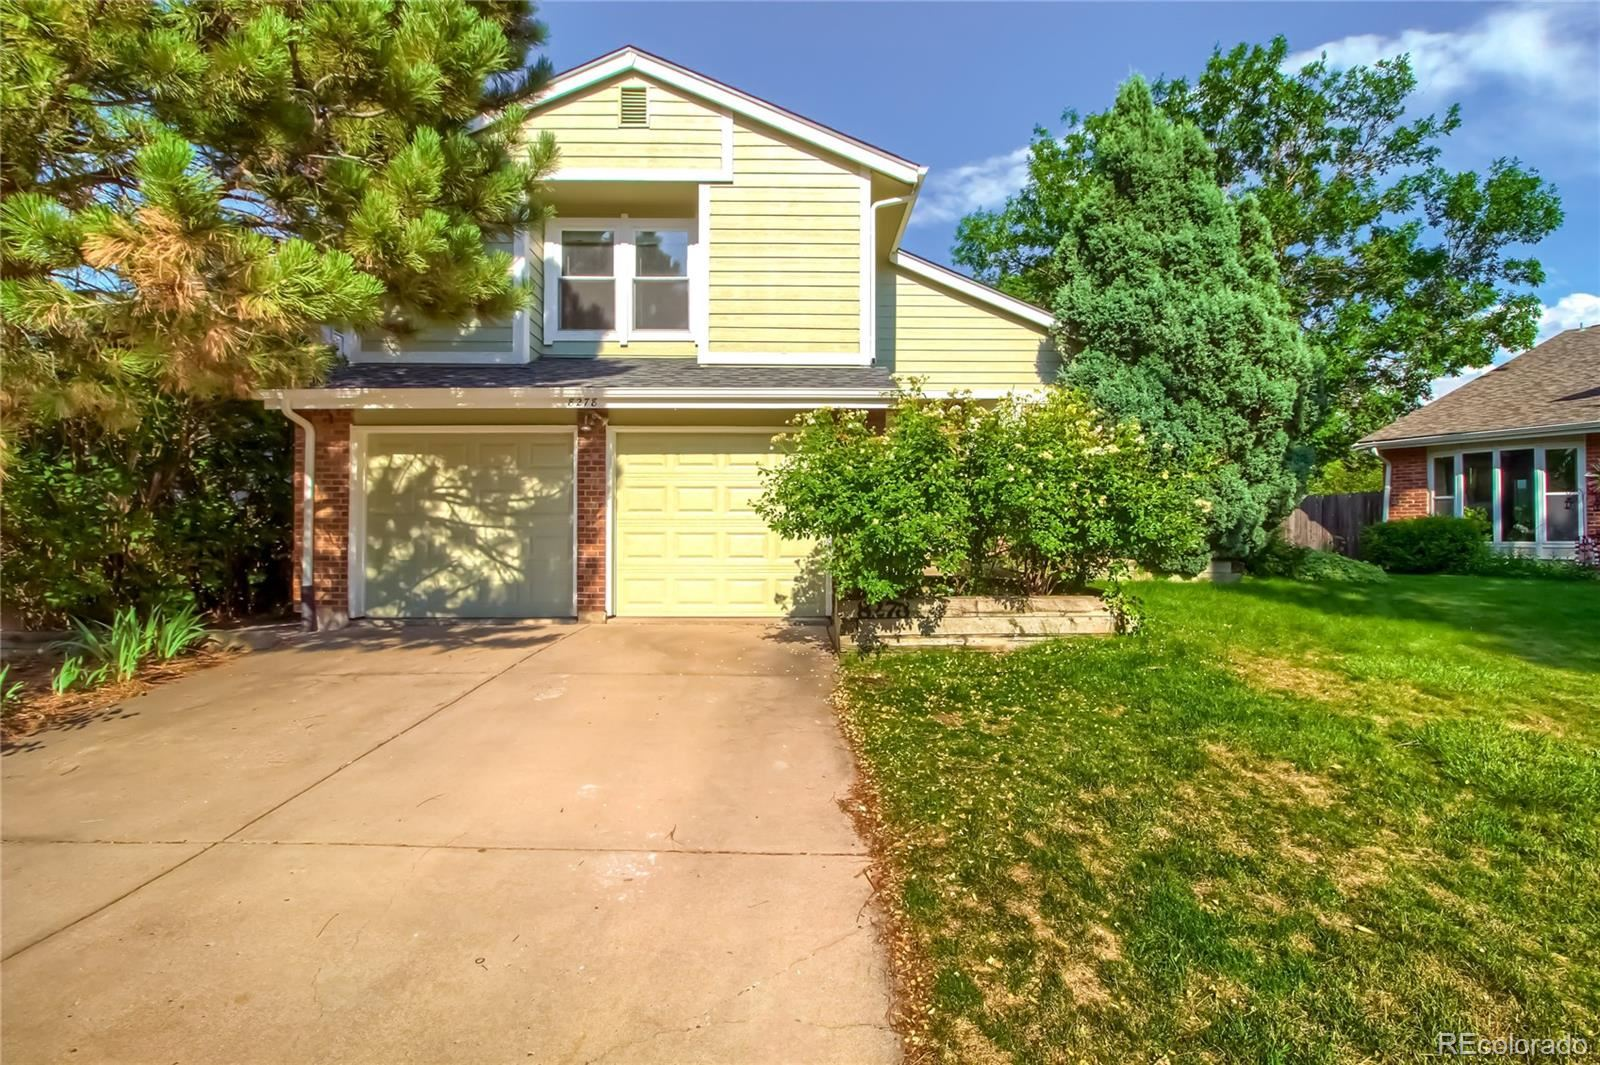 8278 S Syracuse Court, Centennial, CO 80112 - #: 5765296